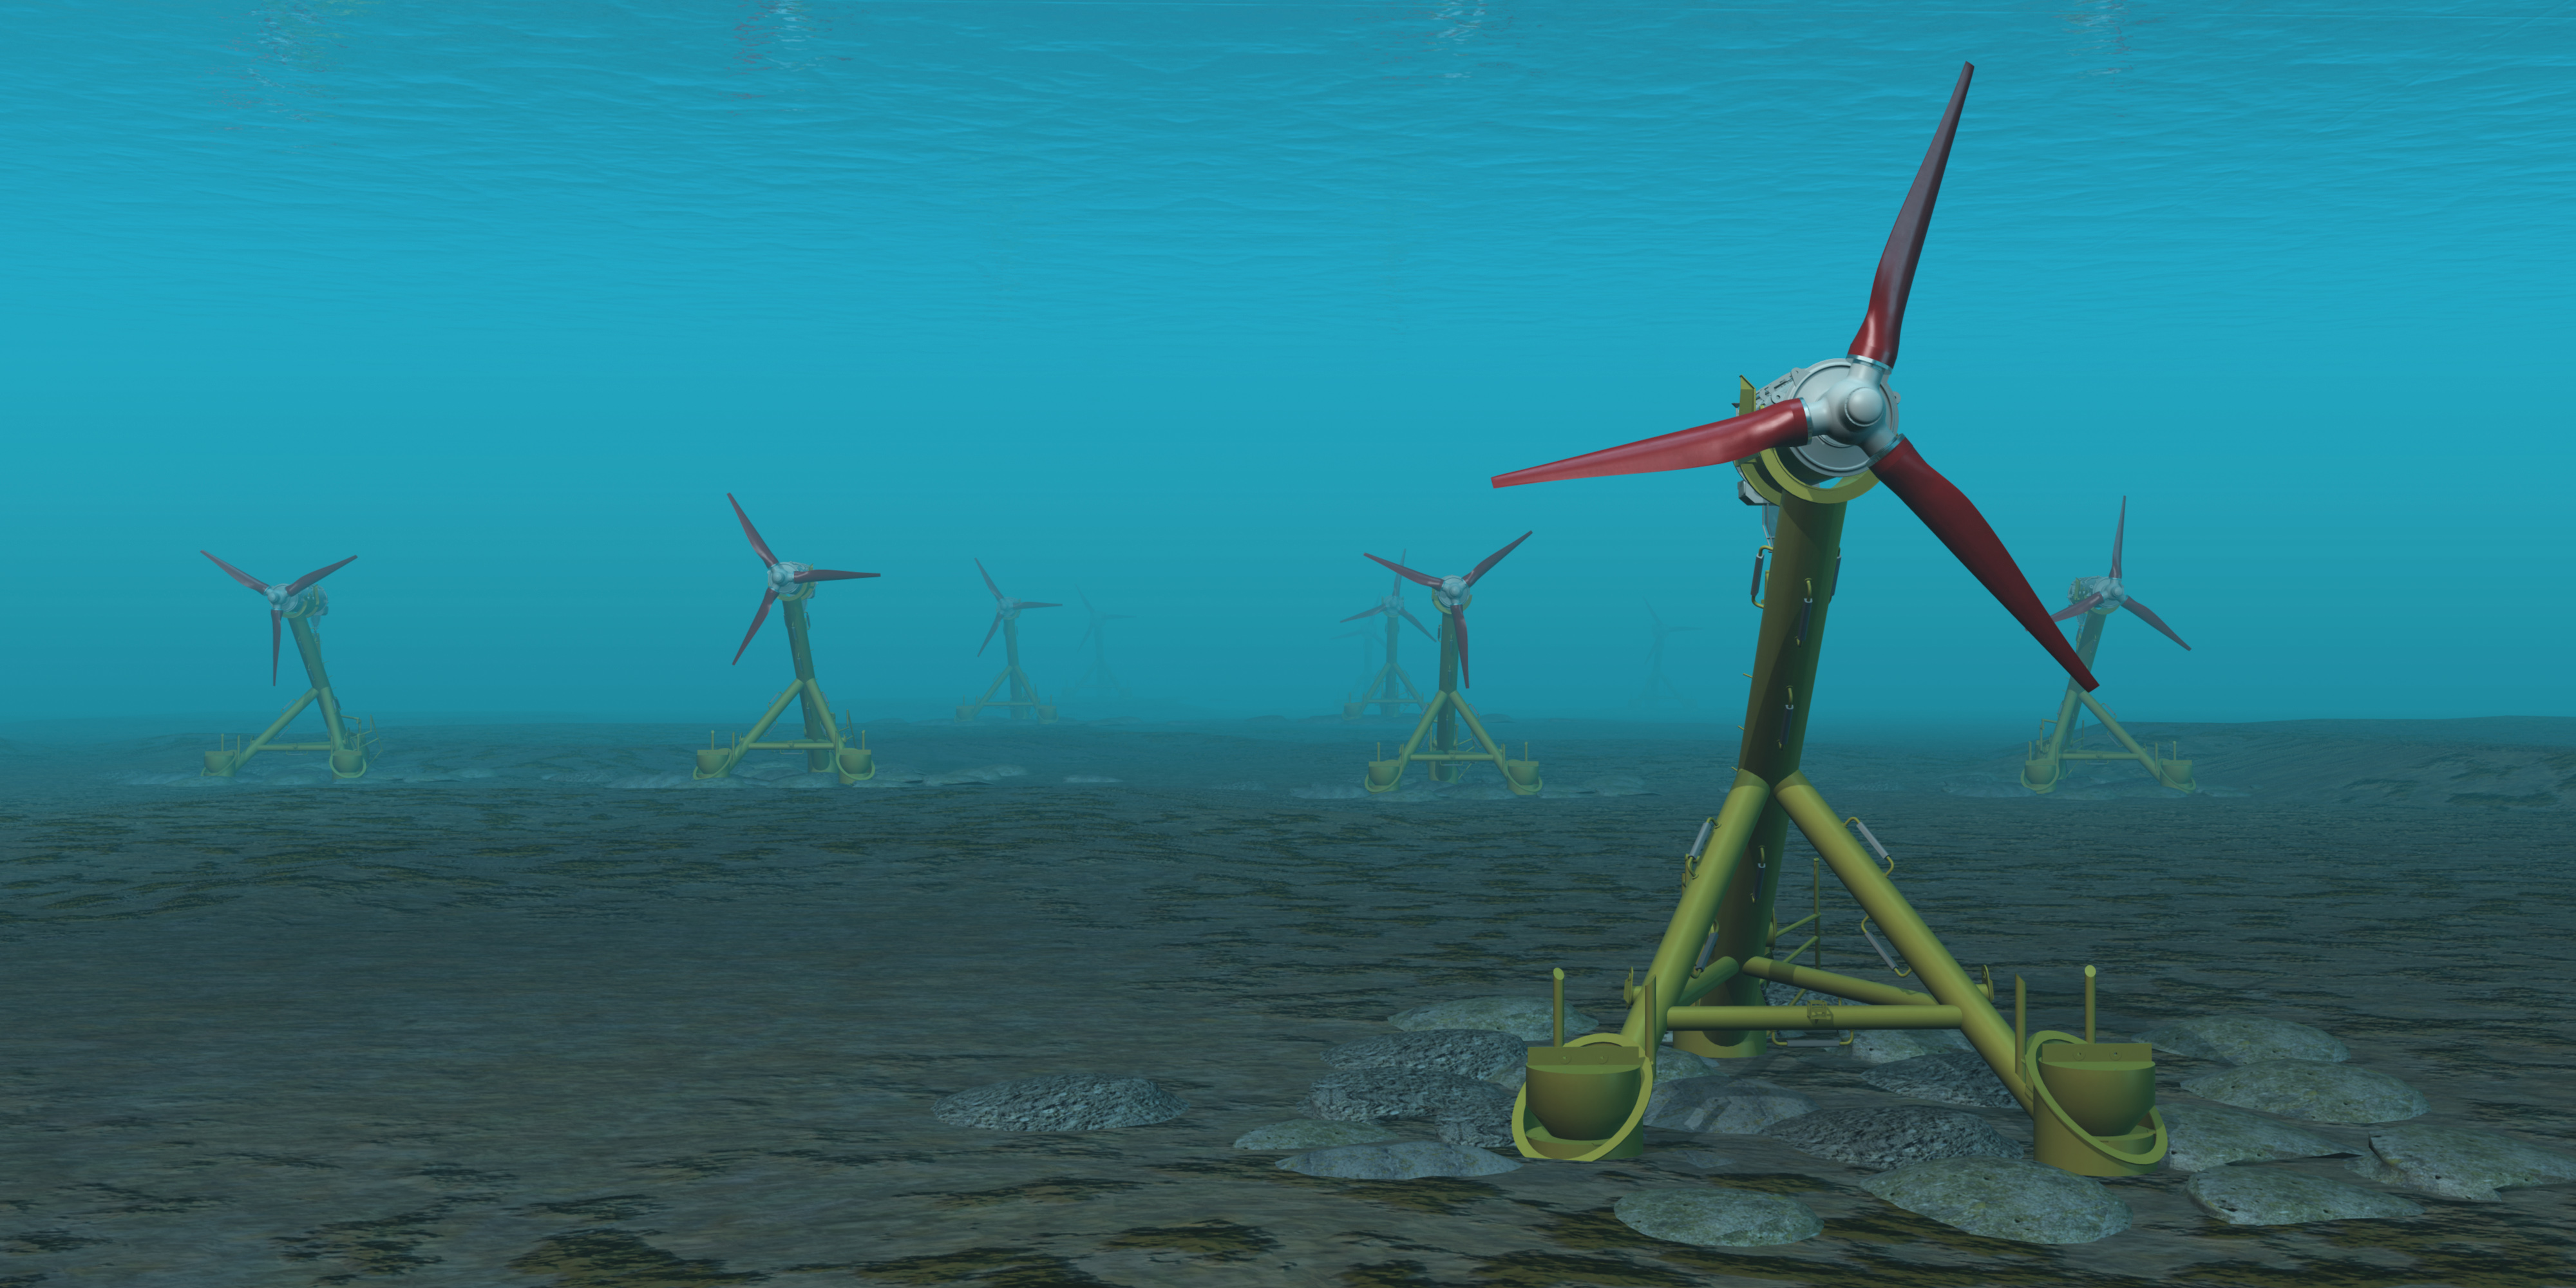 Electro Mechanical Modelling Of Tidal Turbines School Of